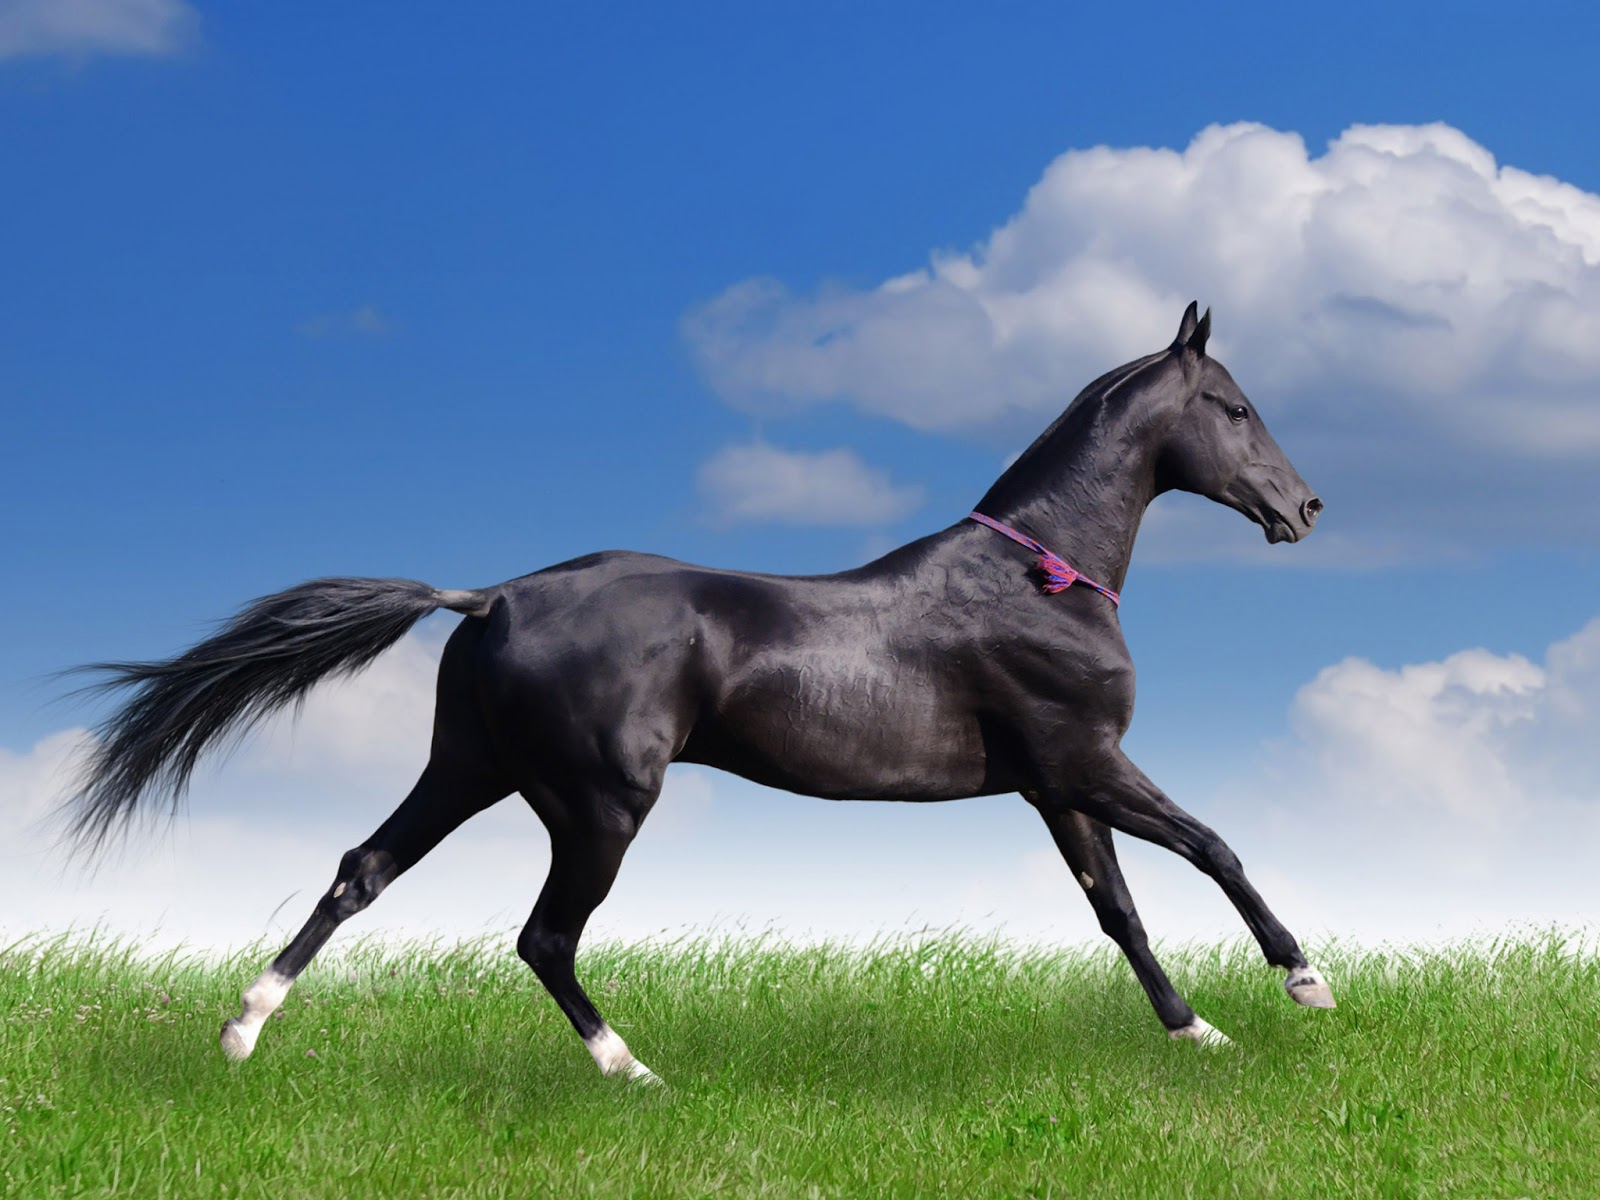 Download   Wallpaper Horse Couple - akhal+teke+horse+hd+wallpaper  Snapshot_447988.jpg